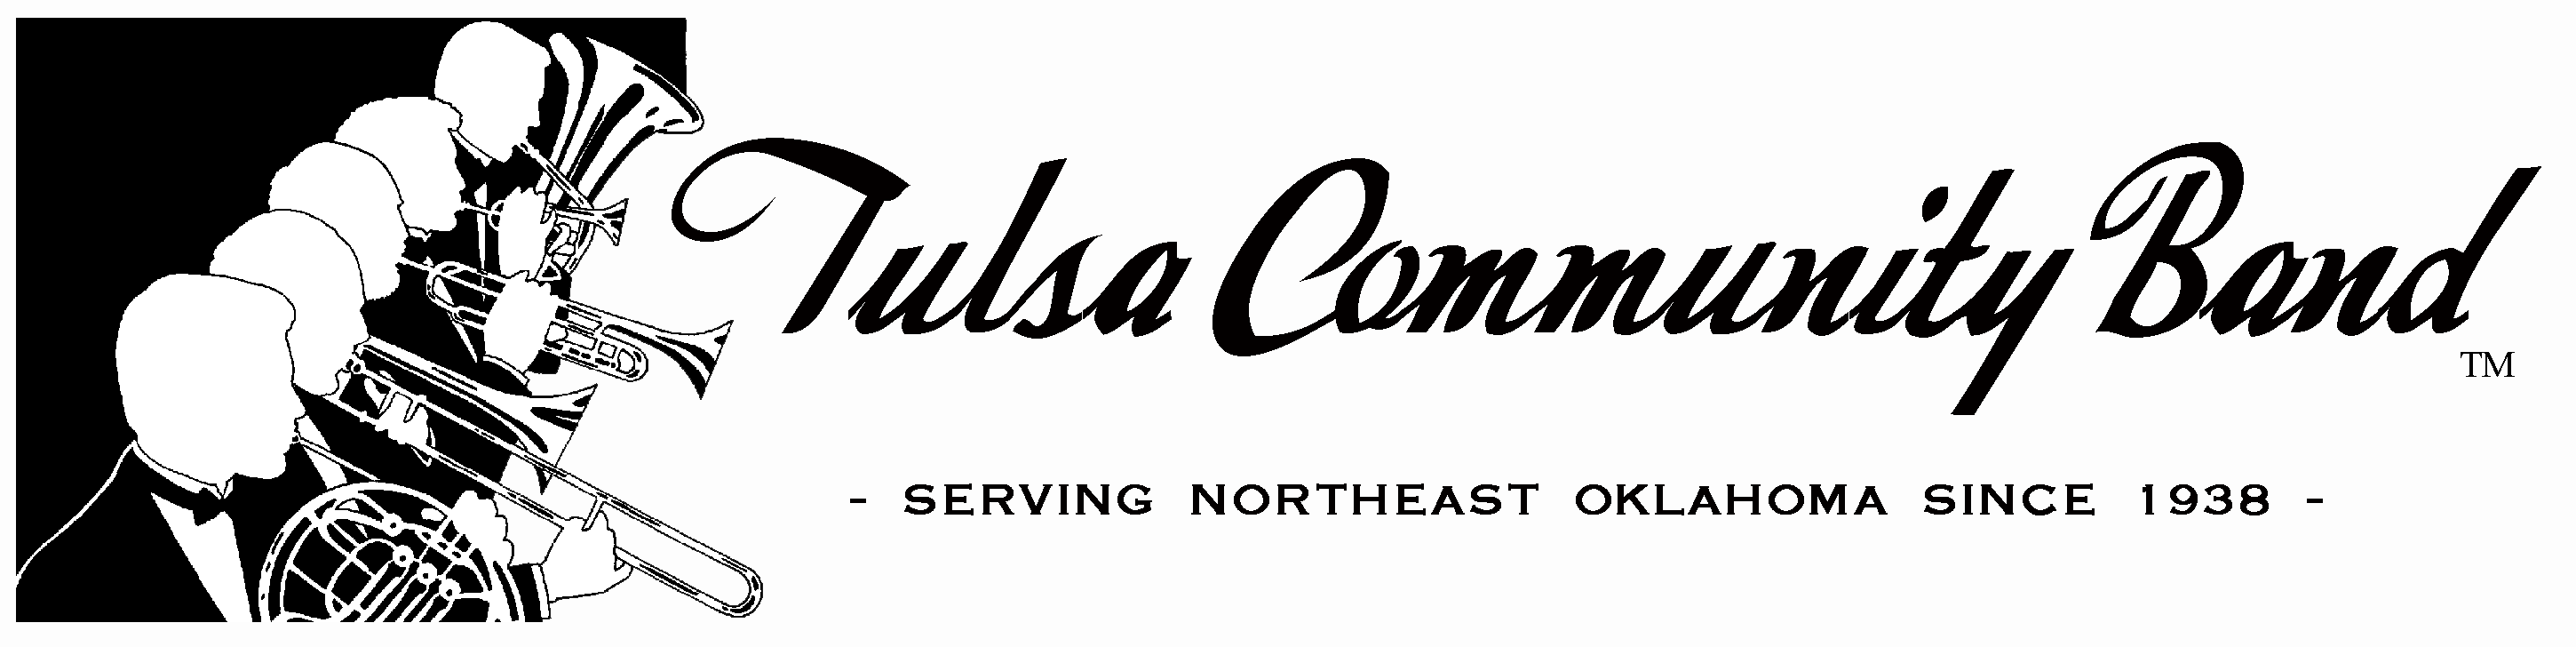 Tulsa Community Band Logo Header